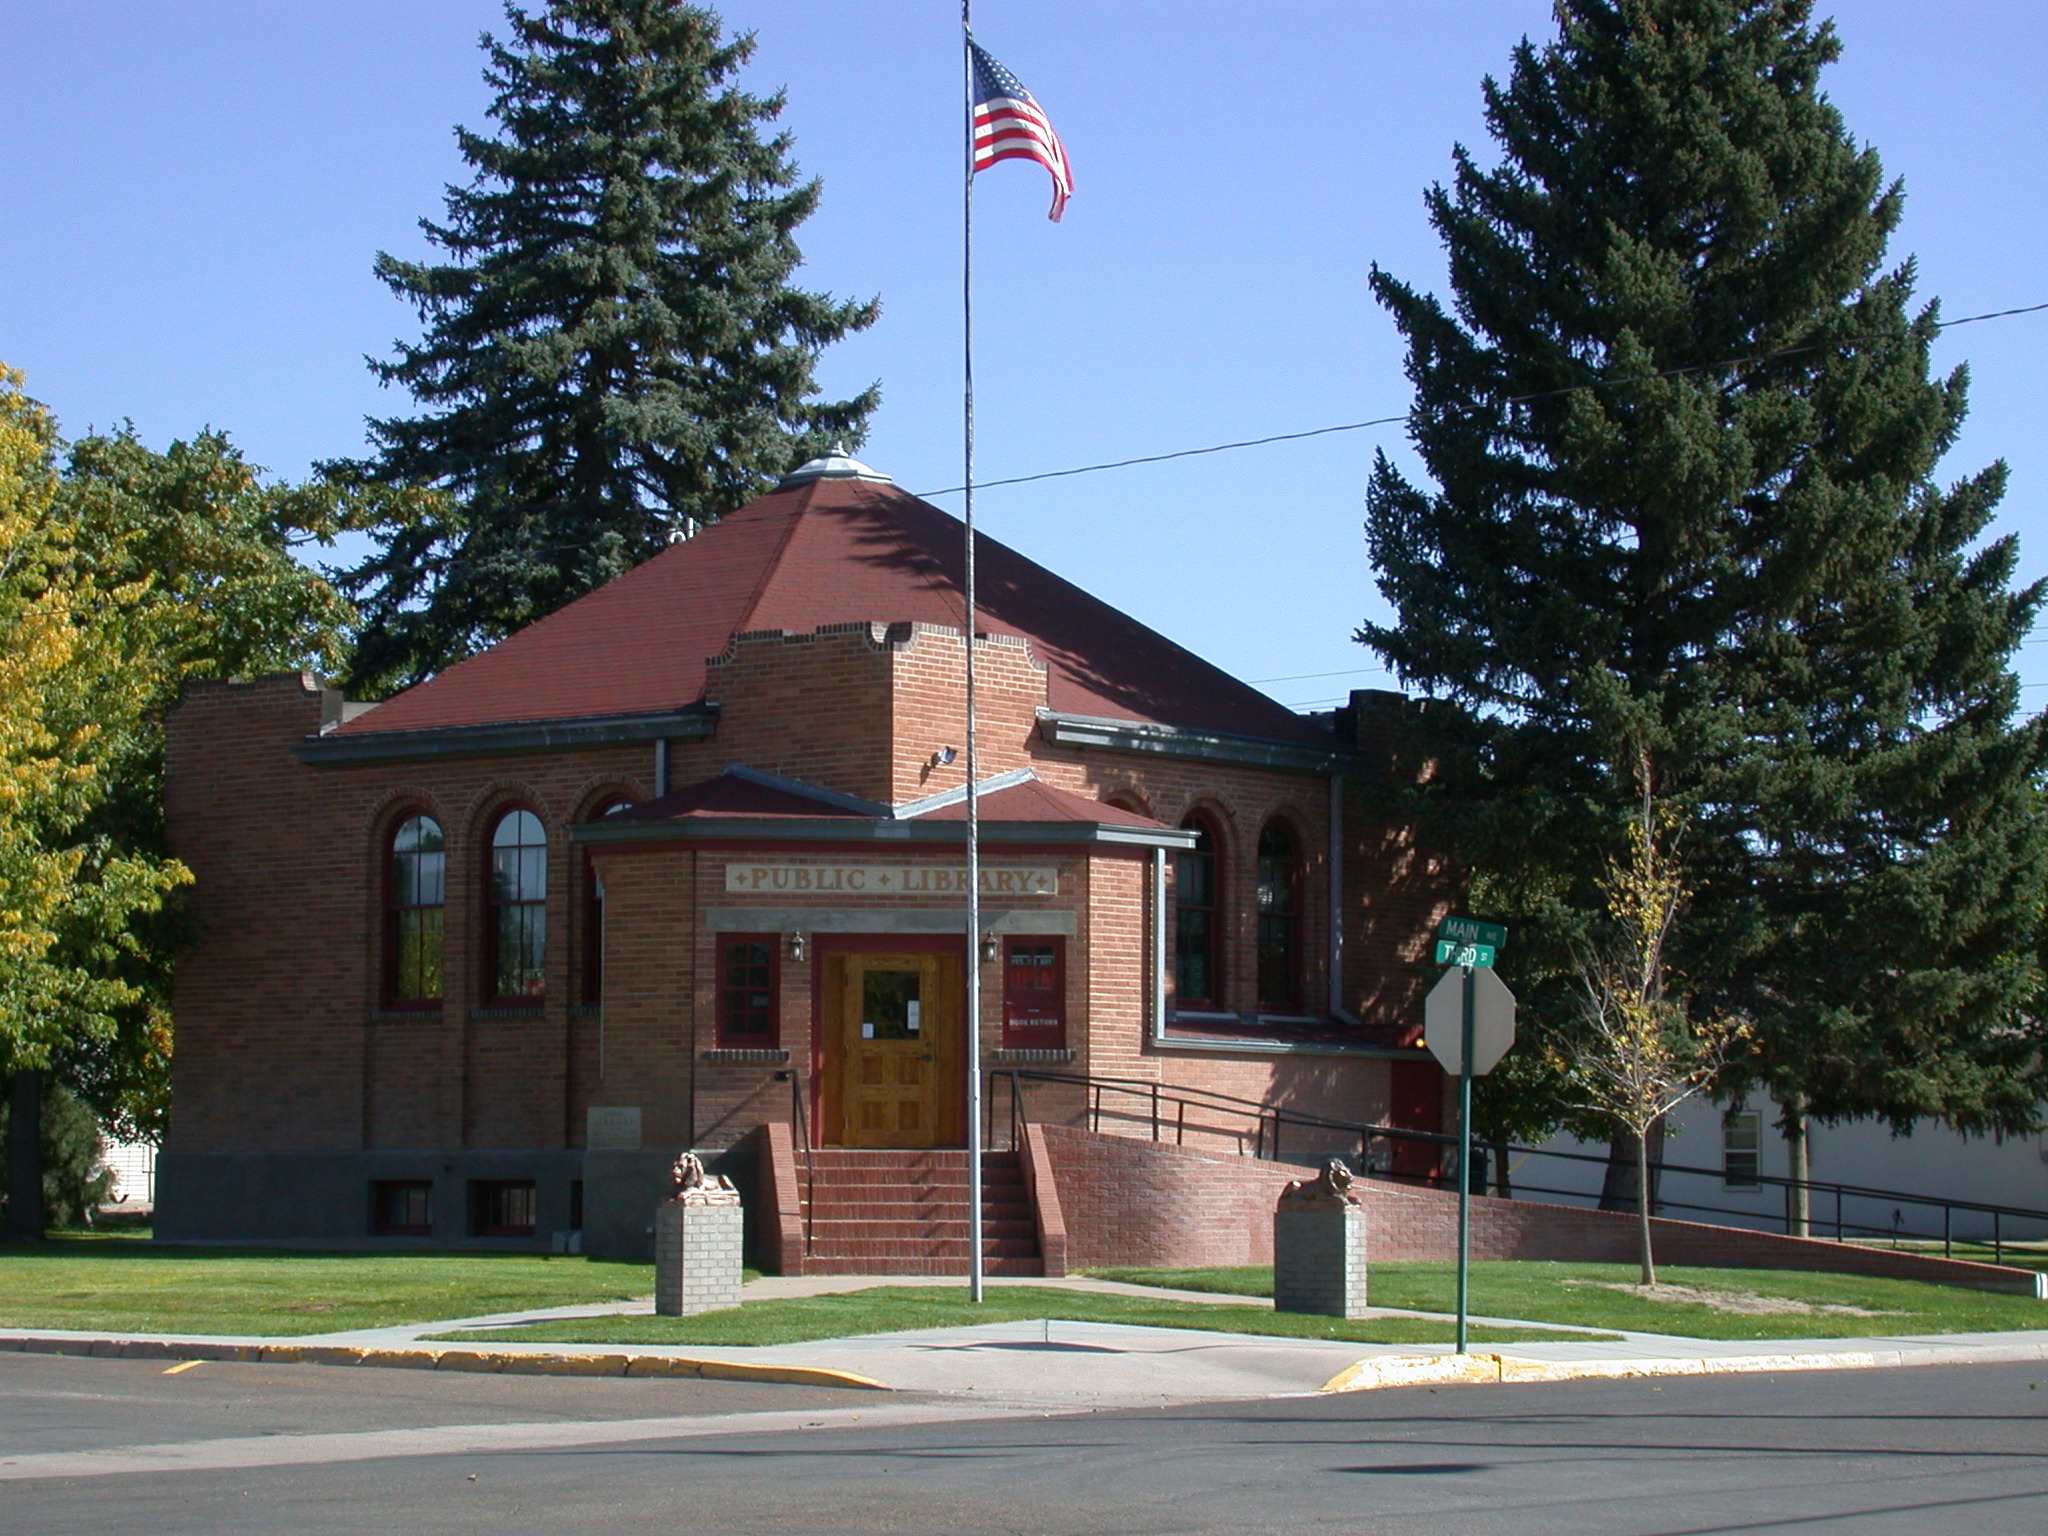 brick building with corner entrance; flag pole flanked by small statues of lions in front